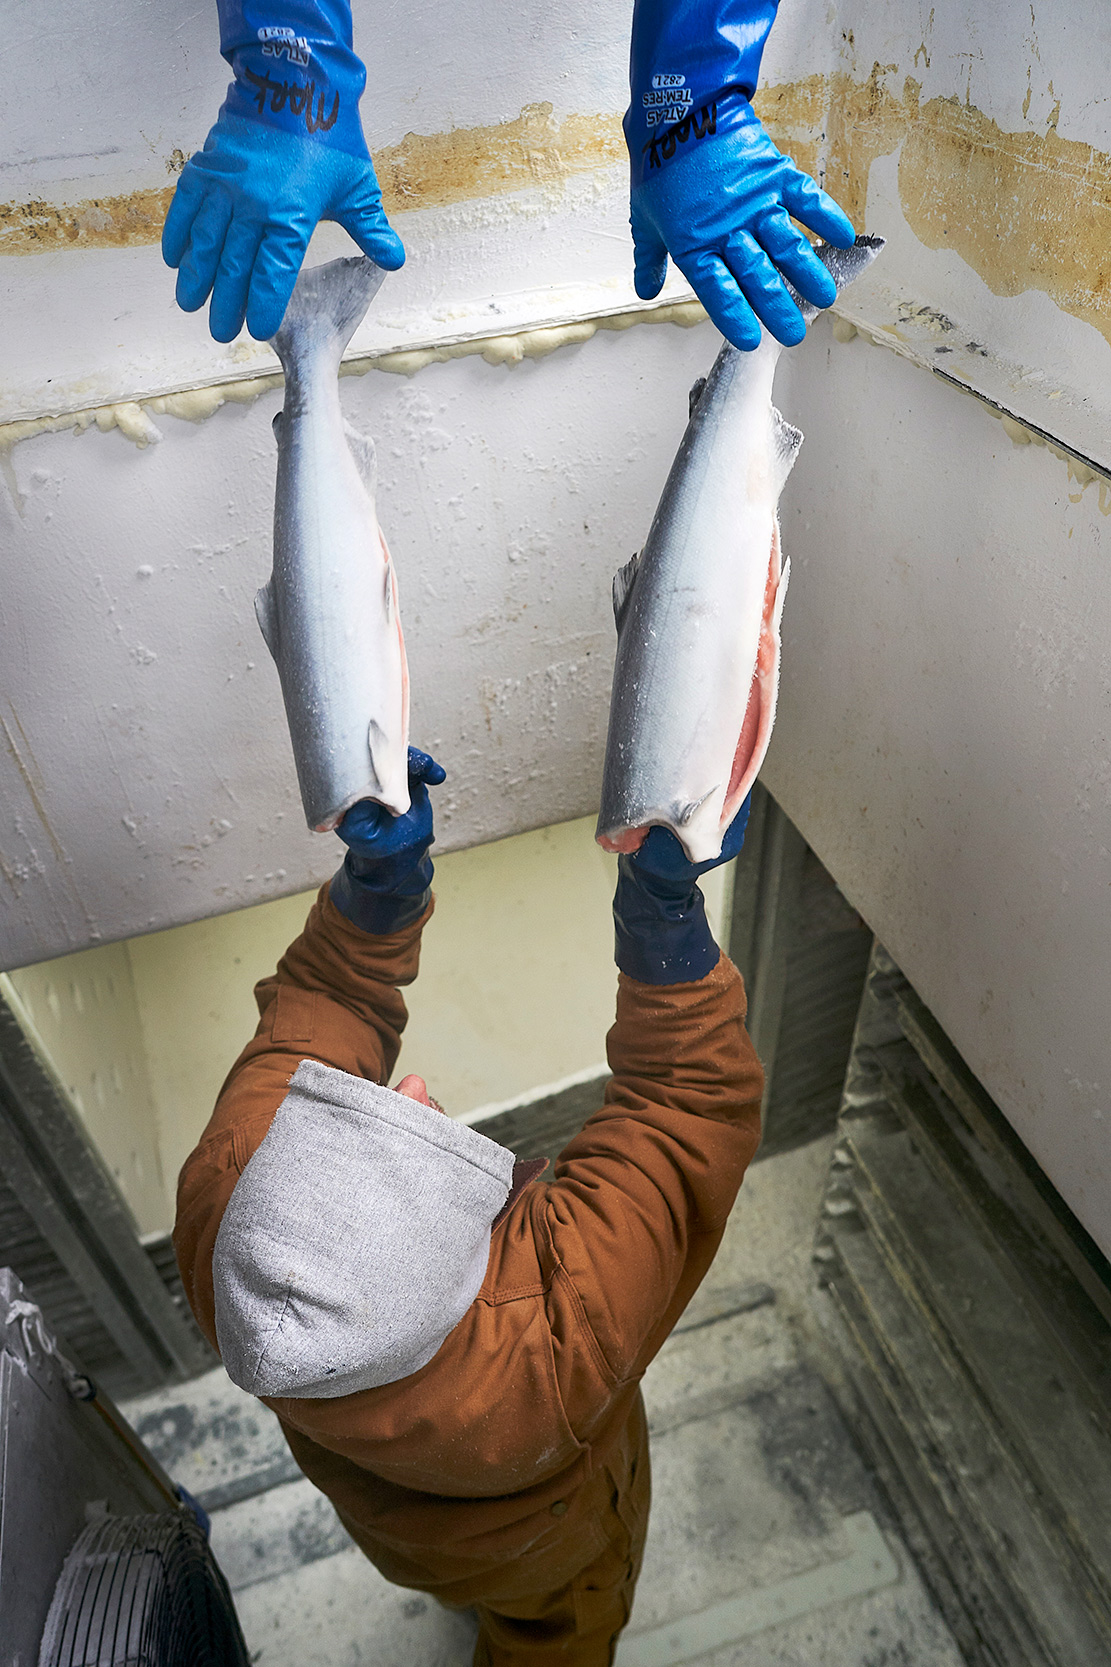 Sitka_BellaDawn_0624-bluehands-frozenfish